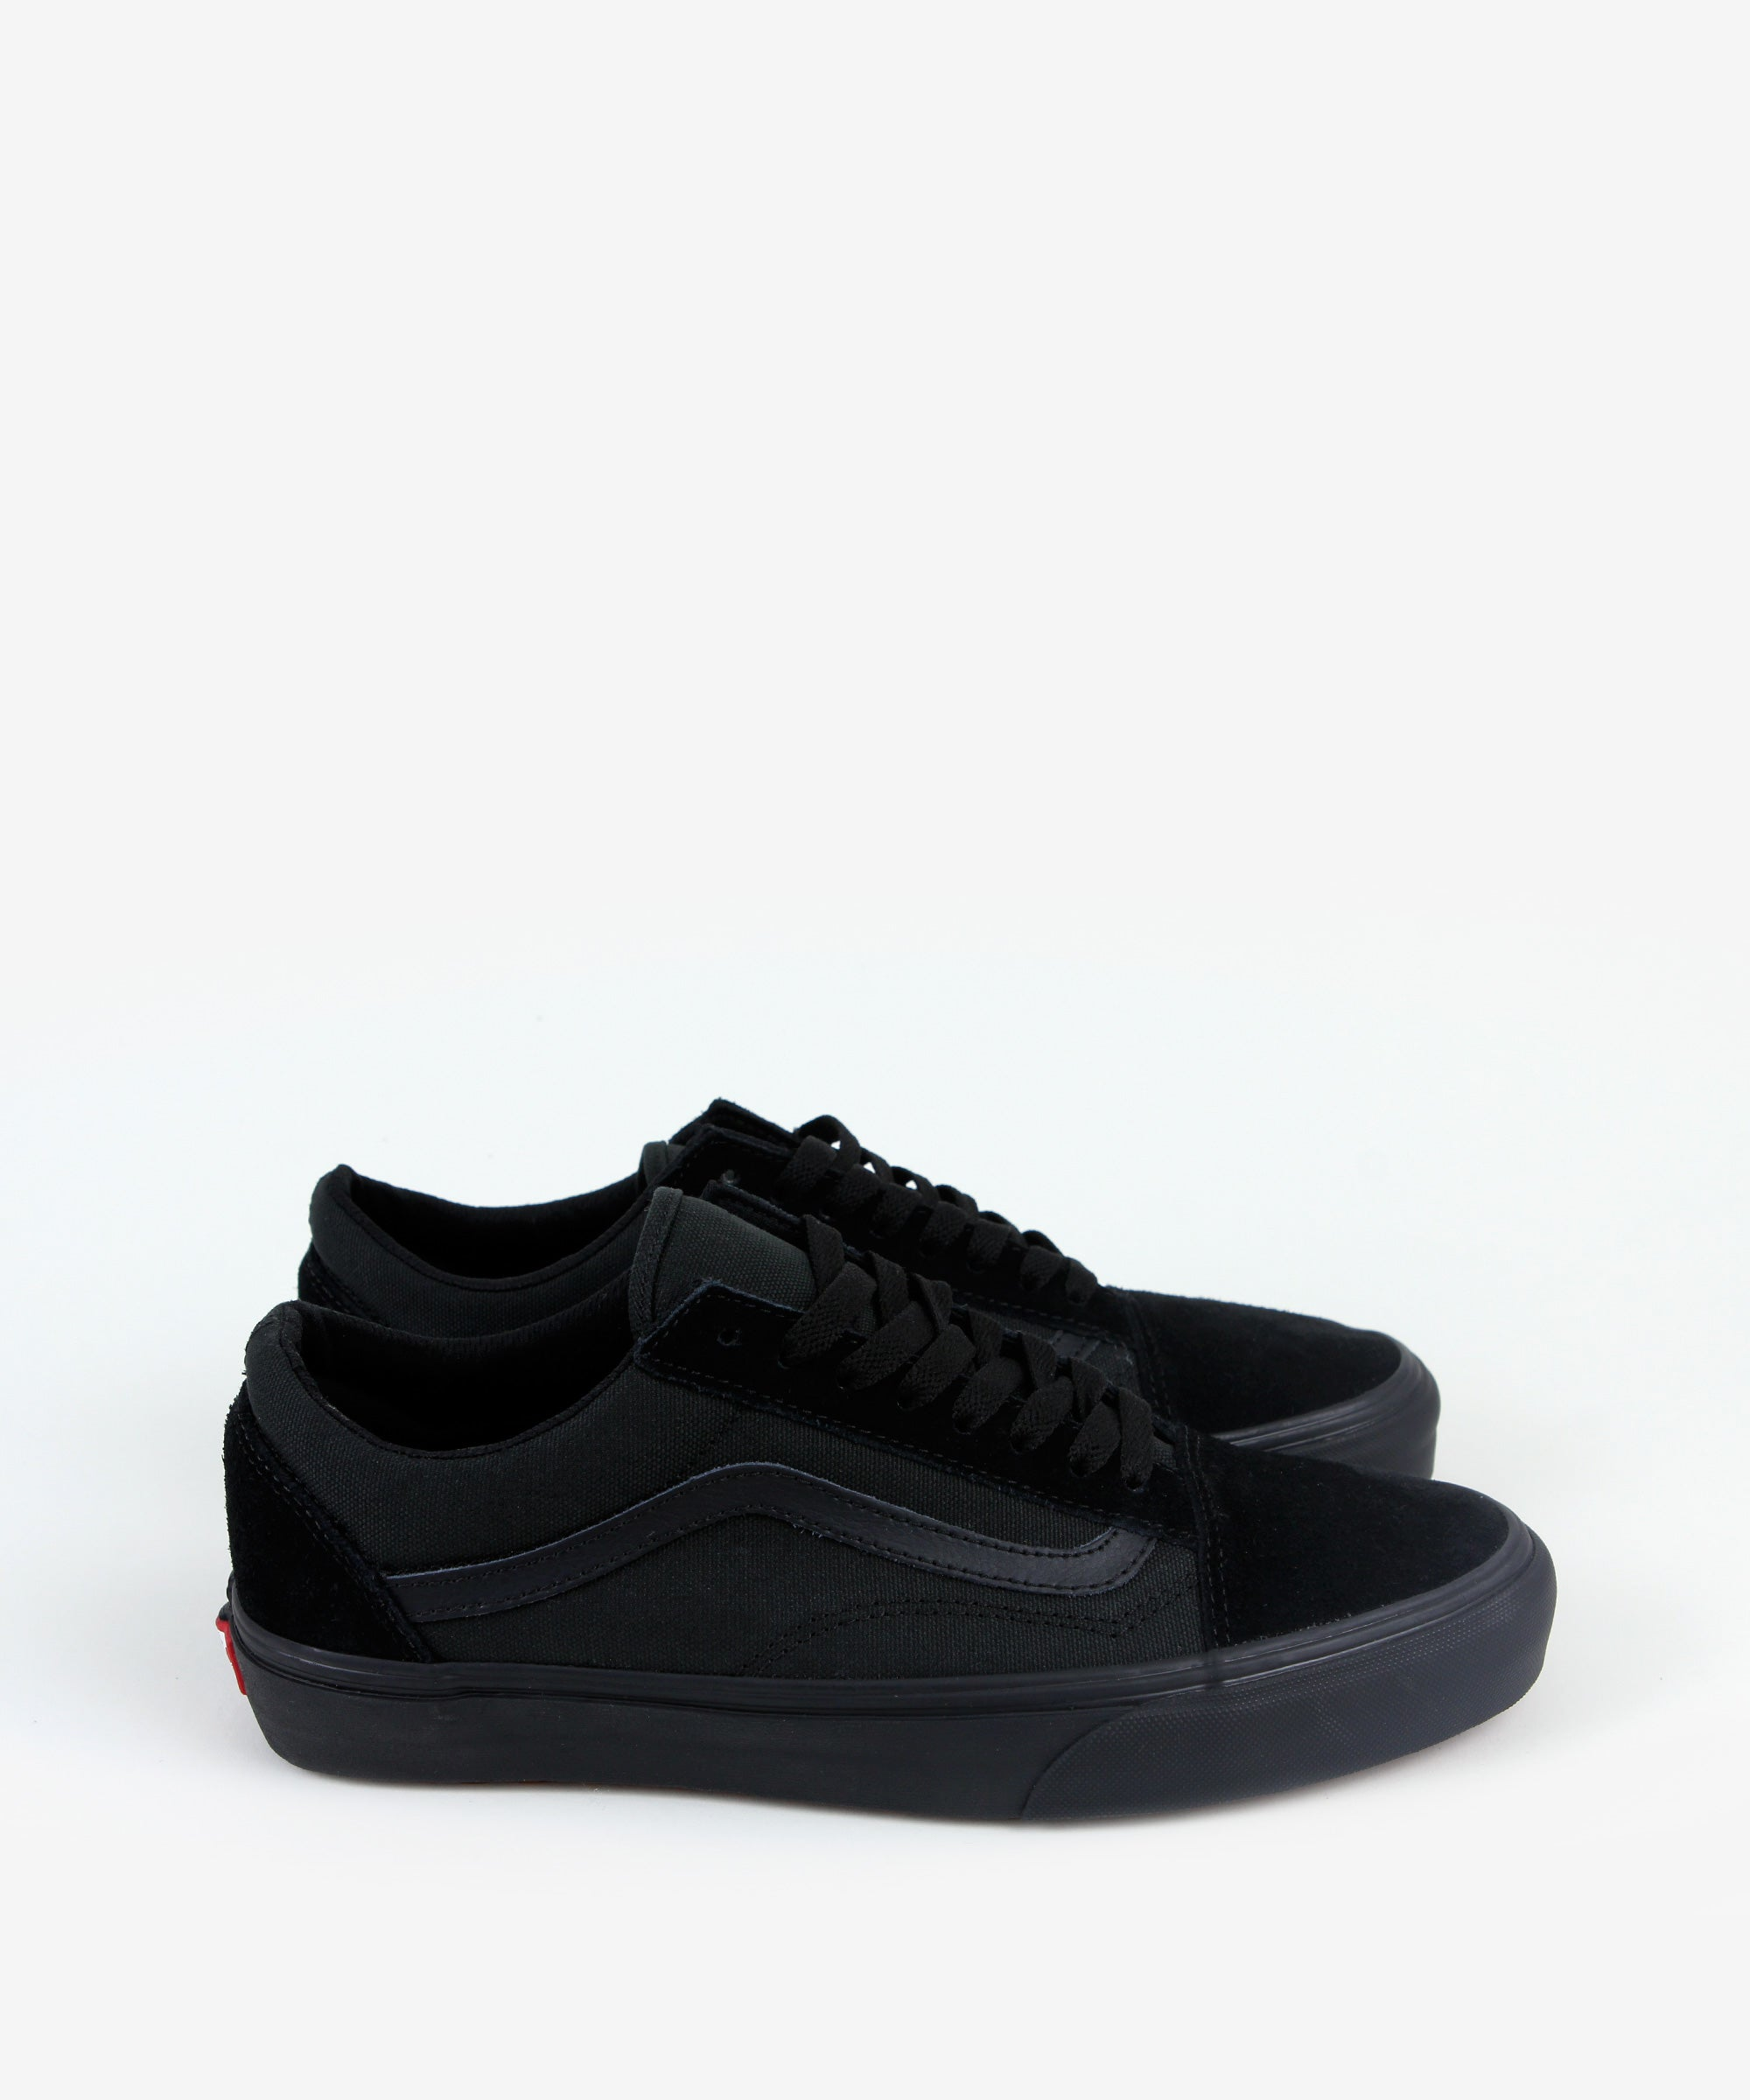 2f75270dd5a VANS OLD SKOOL (MADE FOR THE MAKERS)    BLACK